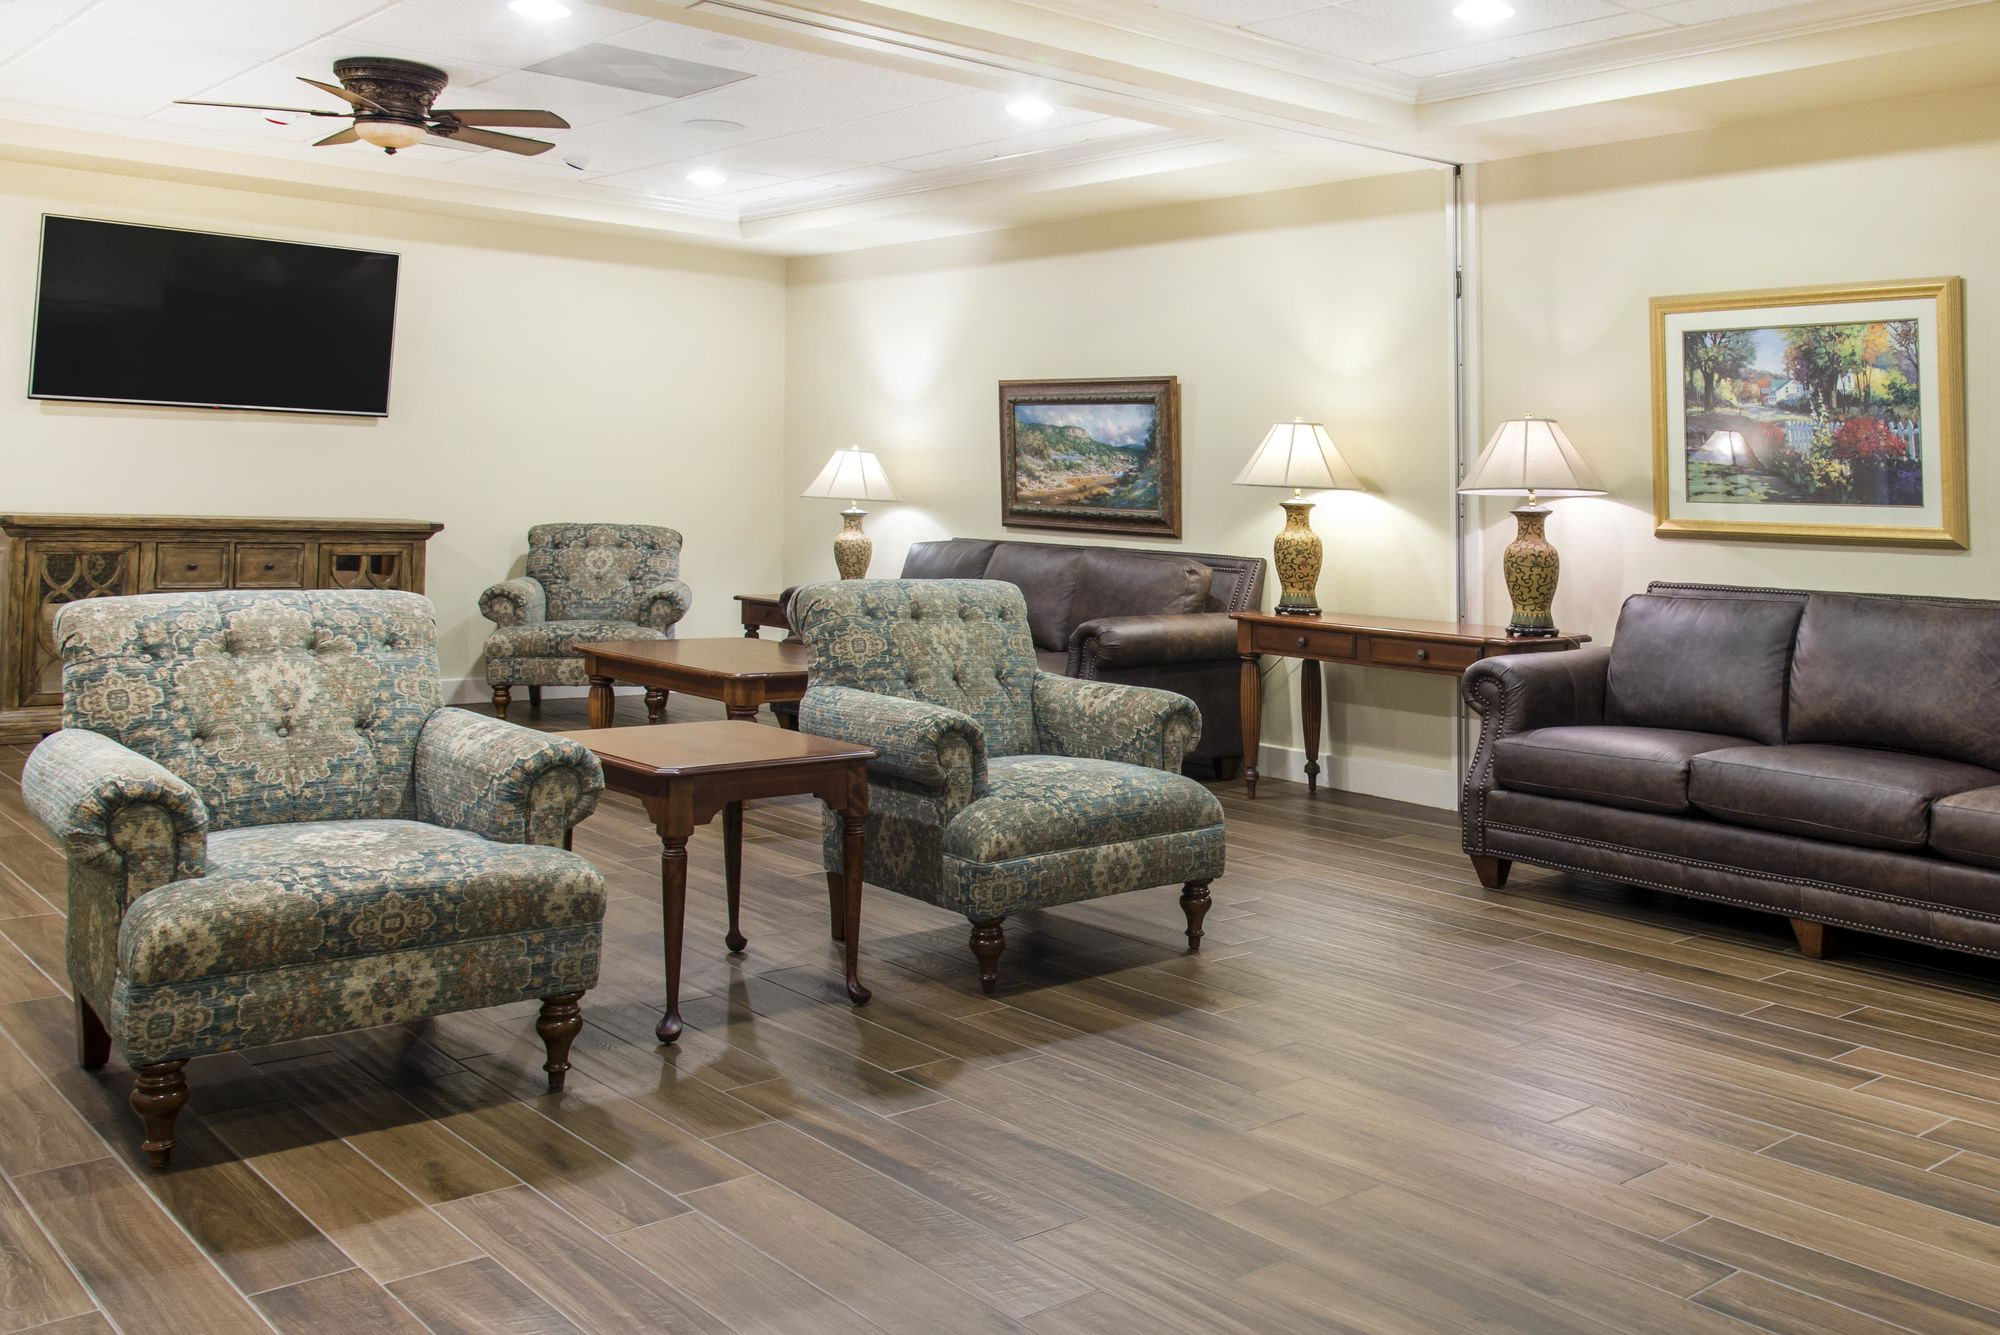 Longhorn reception room at Cook-Walden Captial Parks Funeral Home